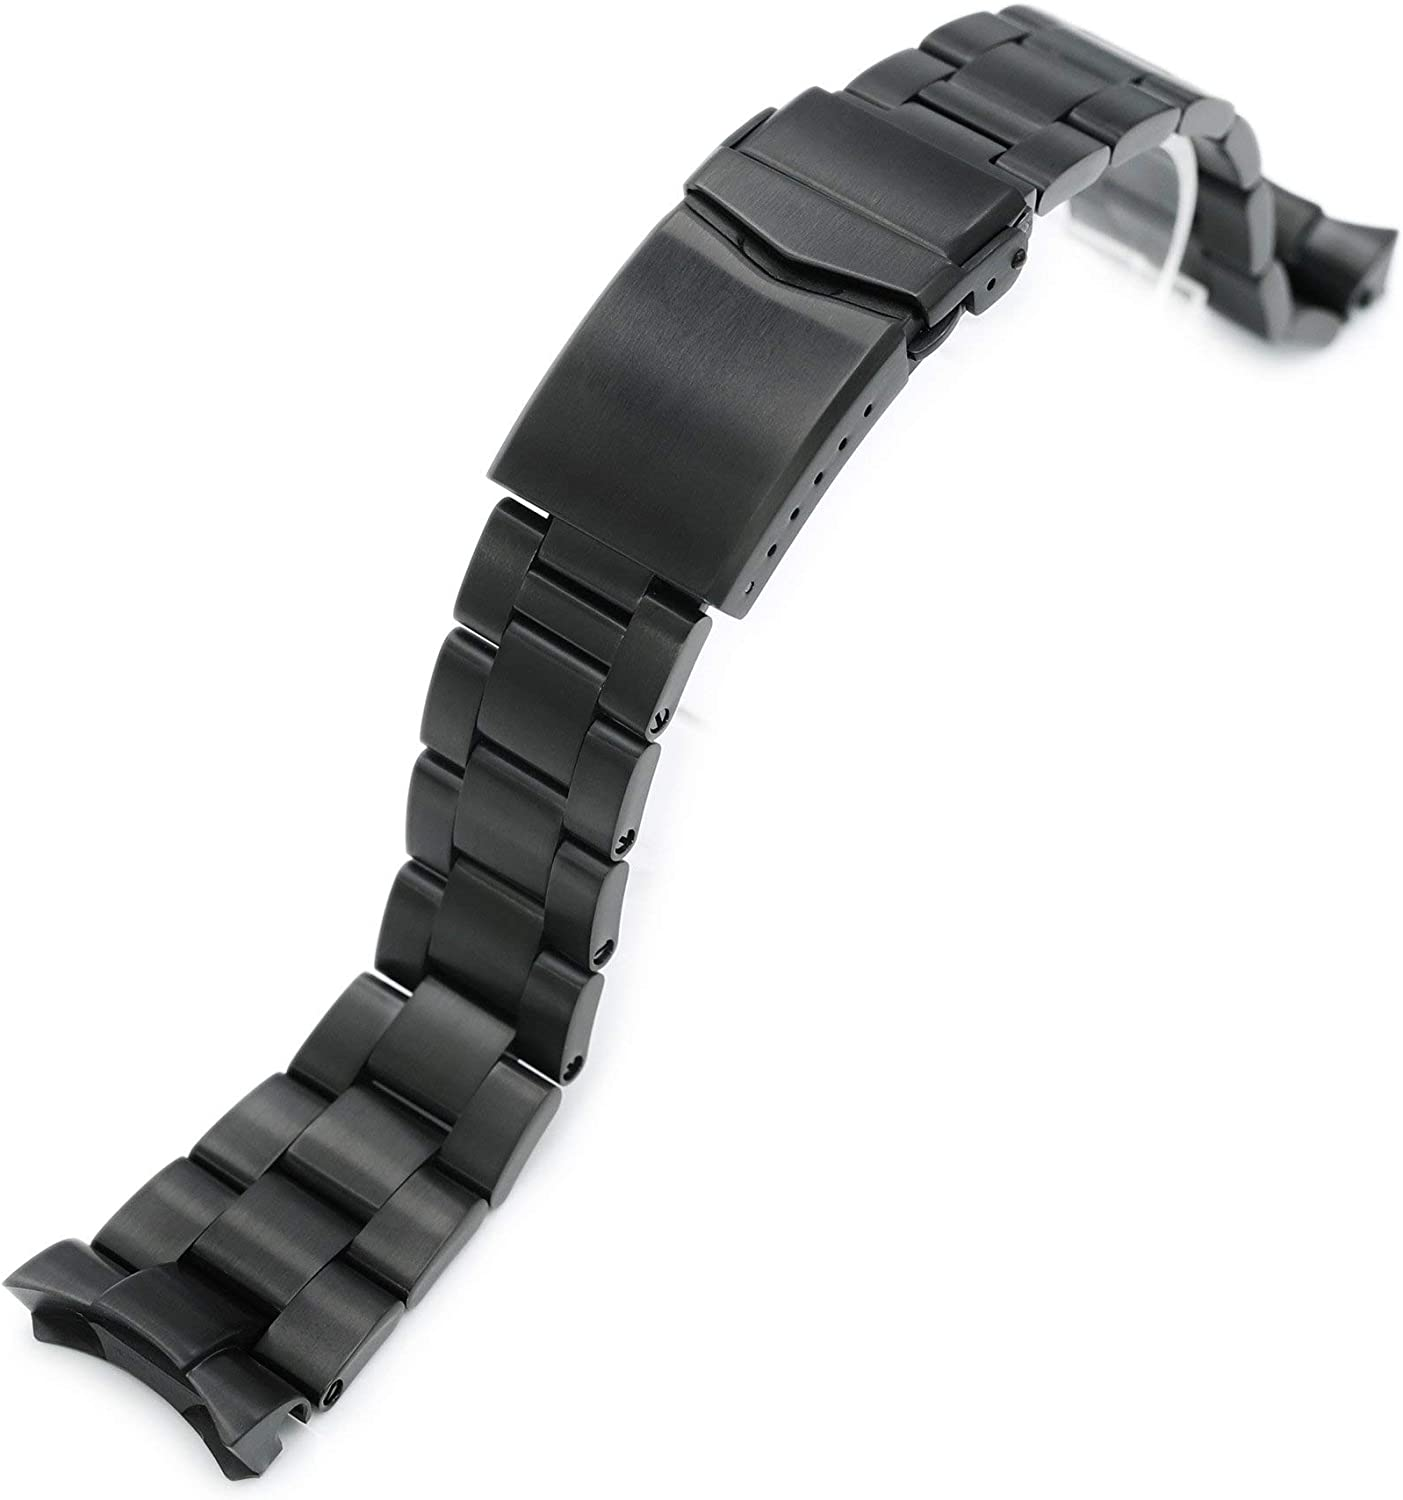 22mm DLC Black Mesa Mall Watch Band Compatible Super- Bargain sale 5 Seiko SRPD51 with